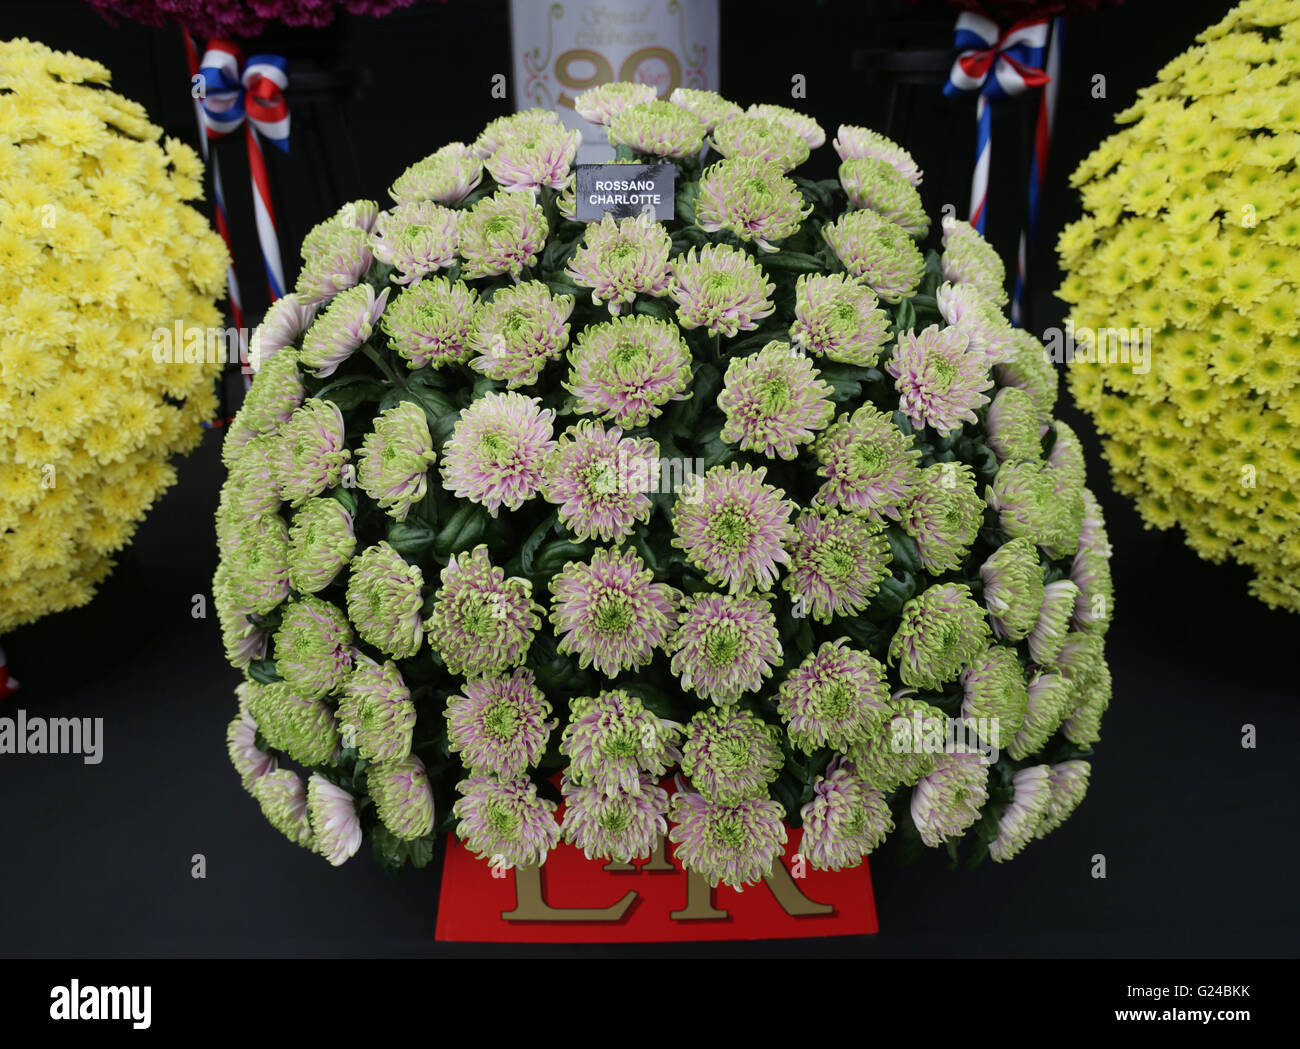 A flower named Rossano Charlotte in honour of Princess Charlotte on display at the National Chrysanthemum Society Stock Photo